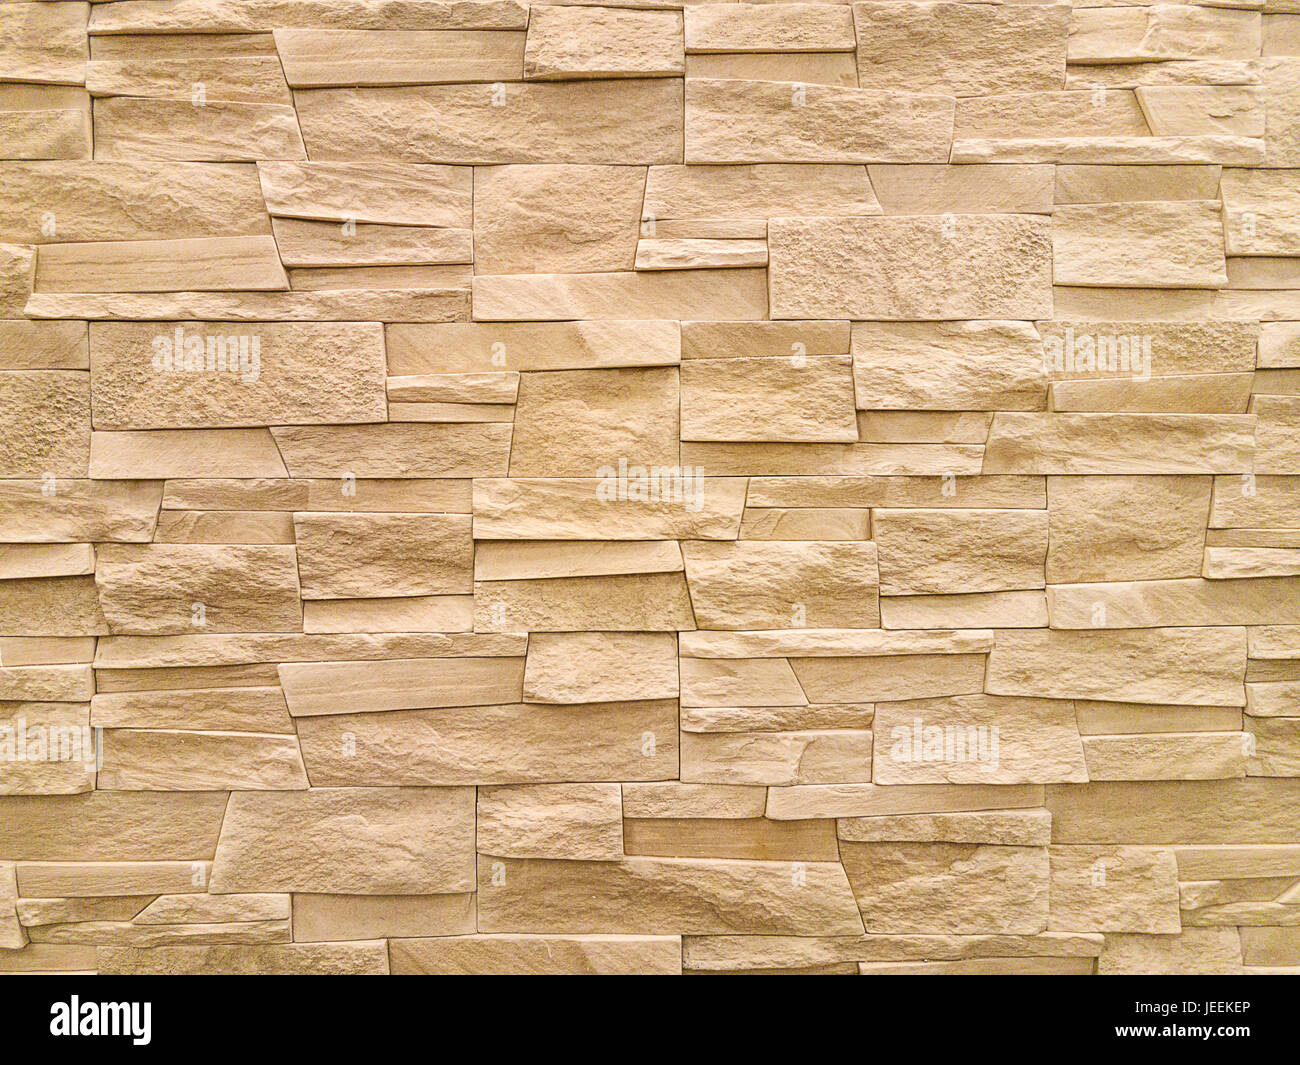 Modern sandstone stone wall background texture Stock Photo ...